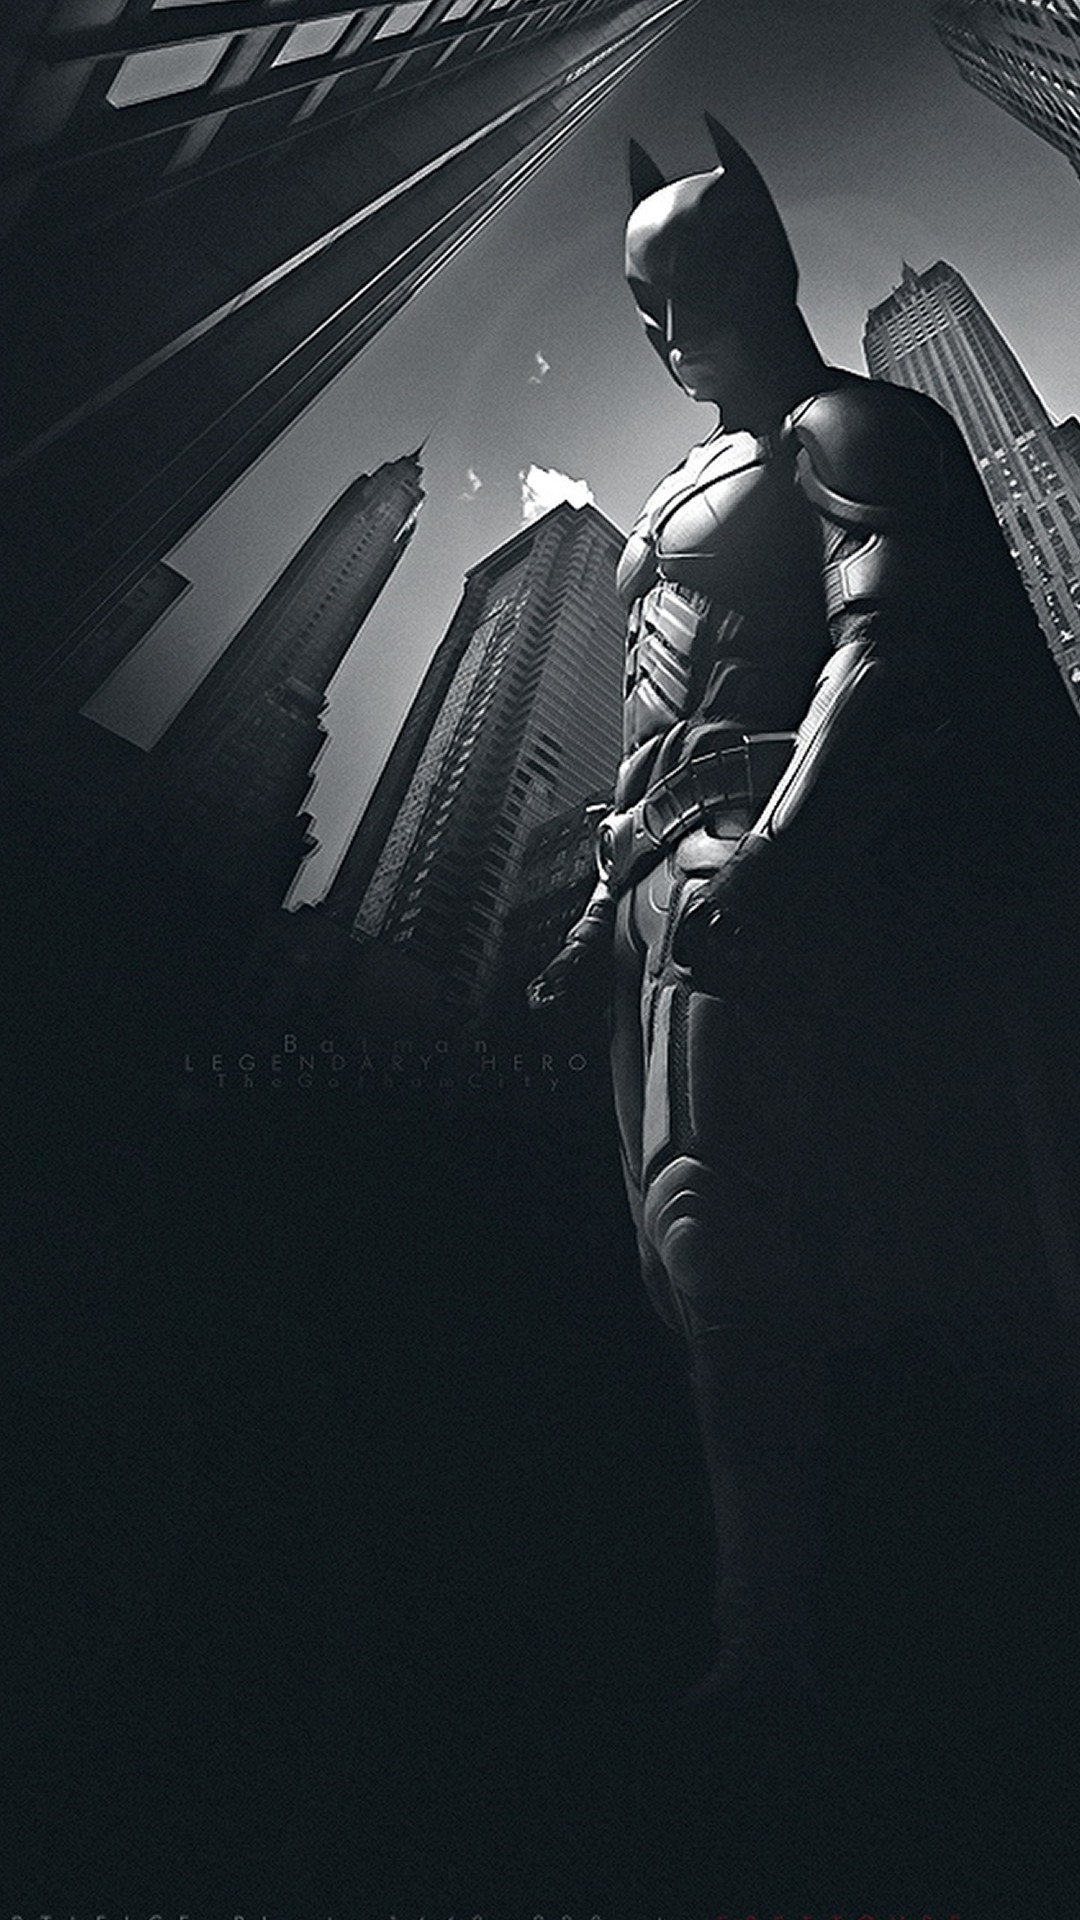 batman iphone wallpaper batman iphone wallpaper iphone wallpapers 2679